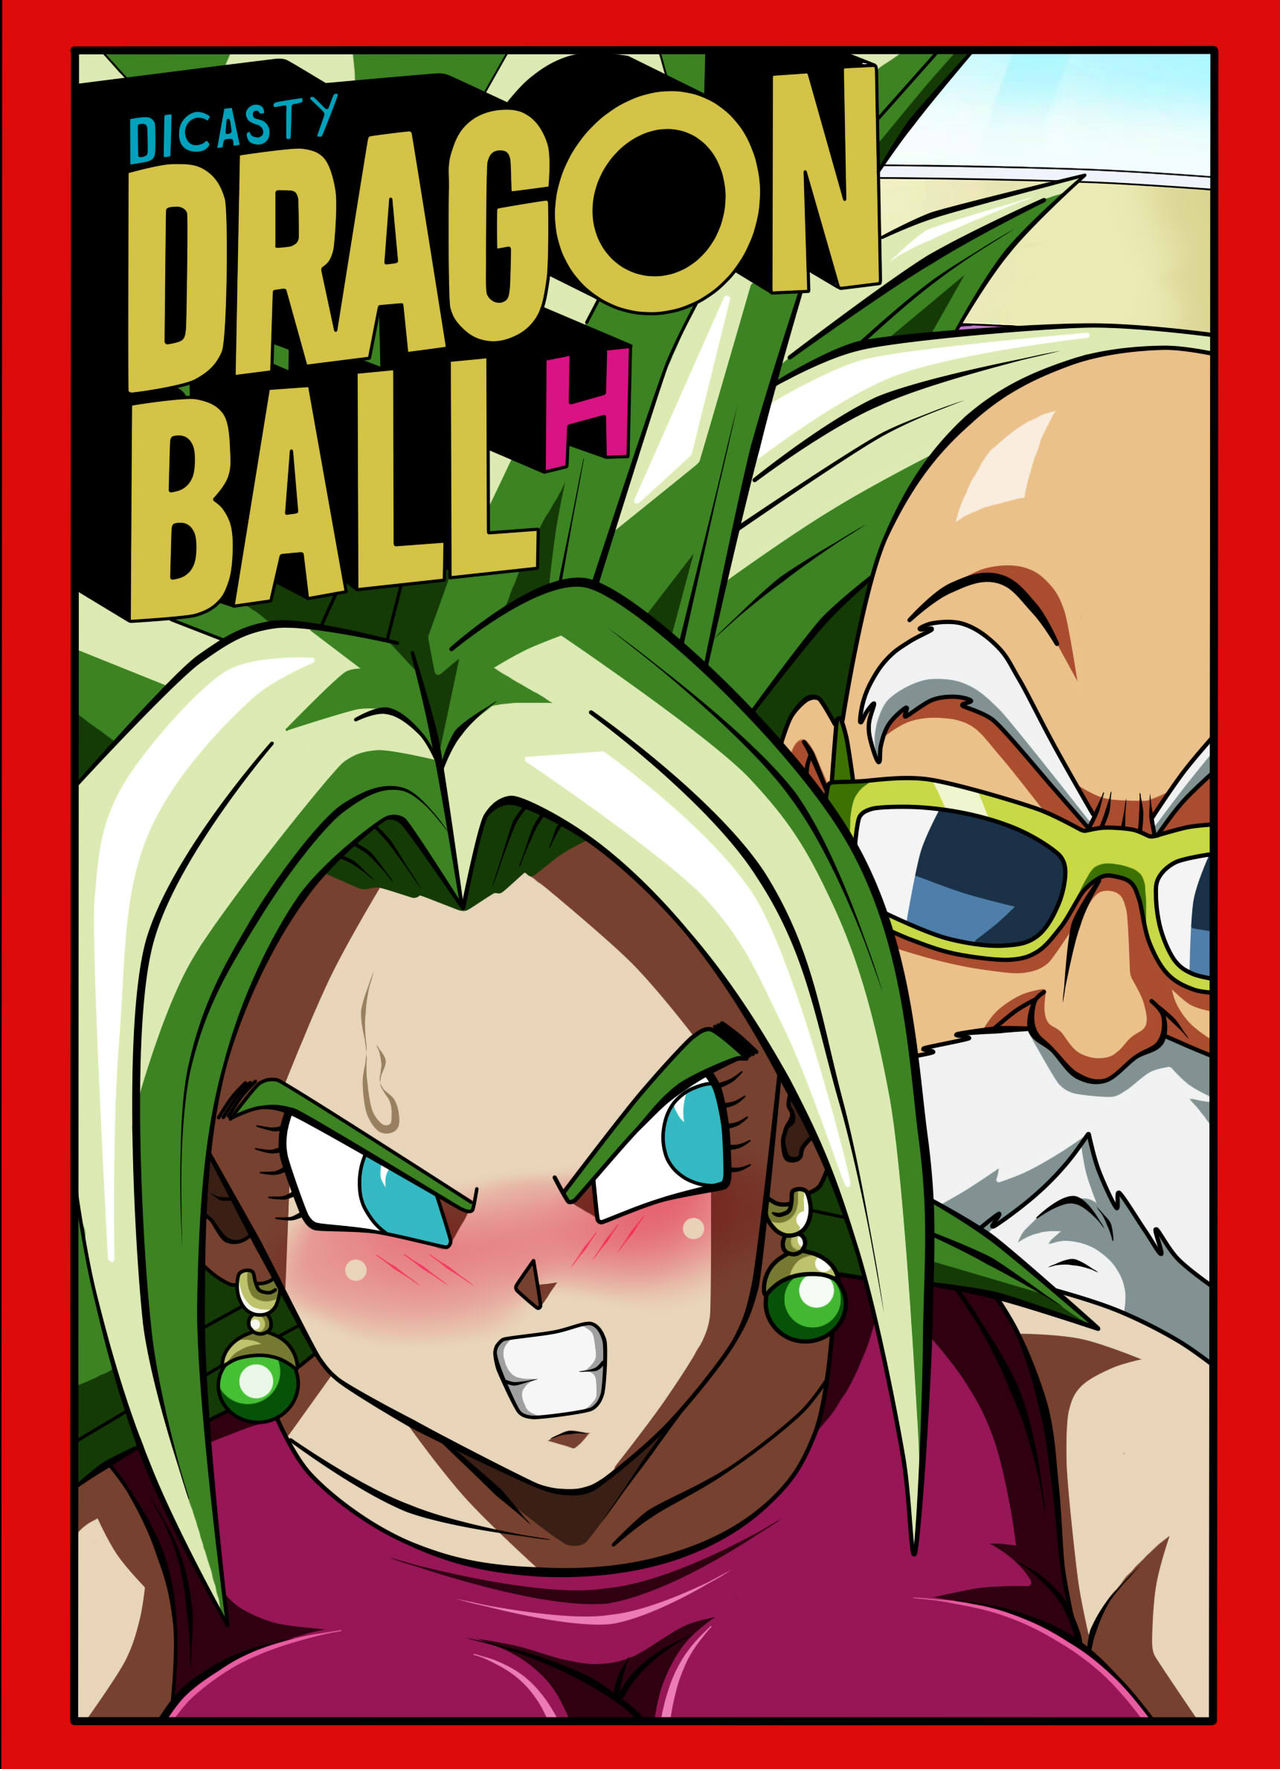 ver comic porno de dragon ball super